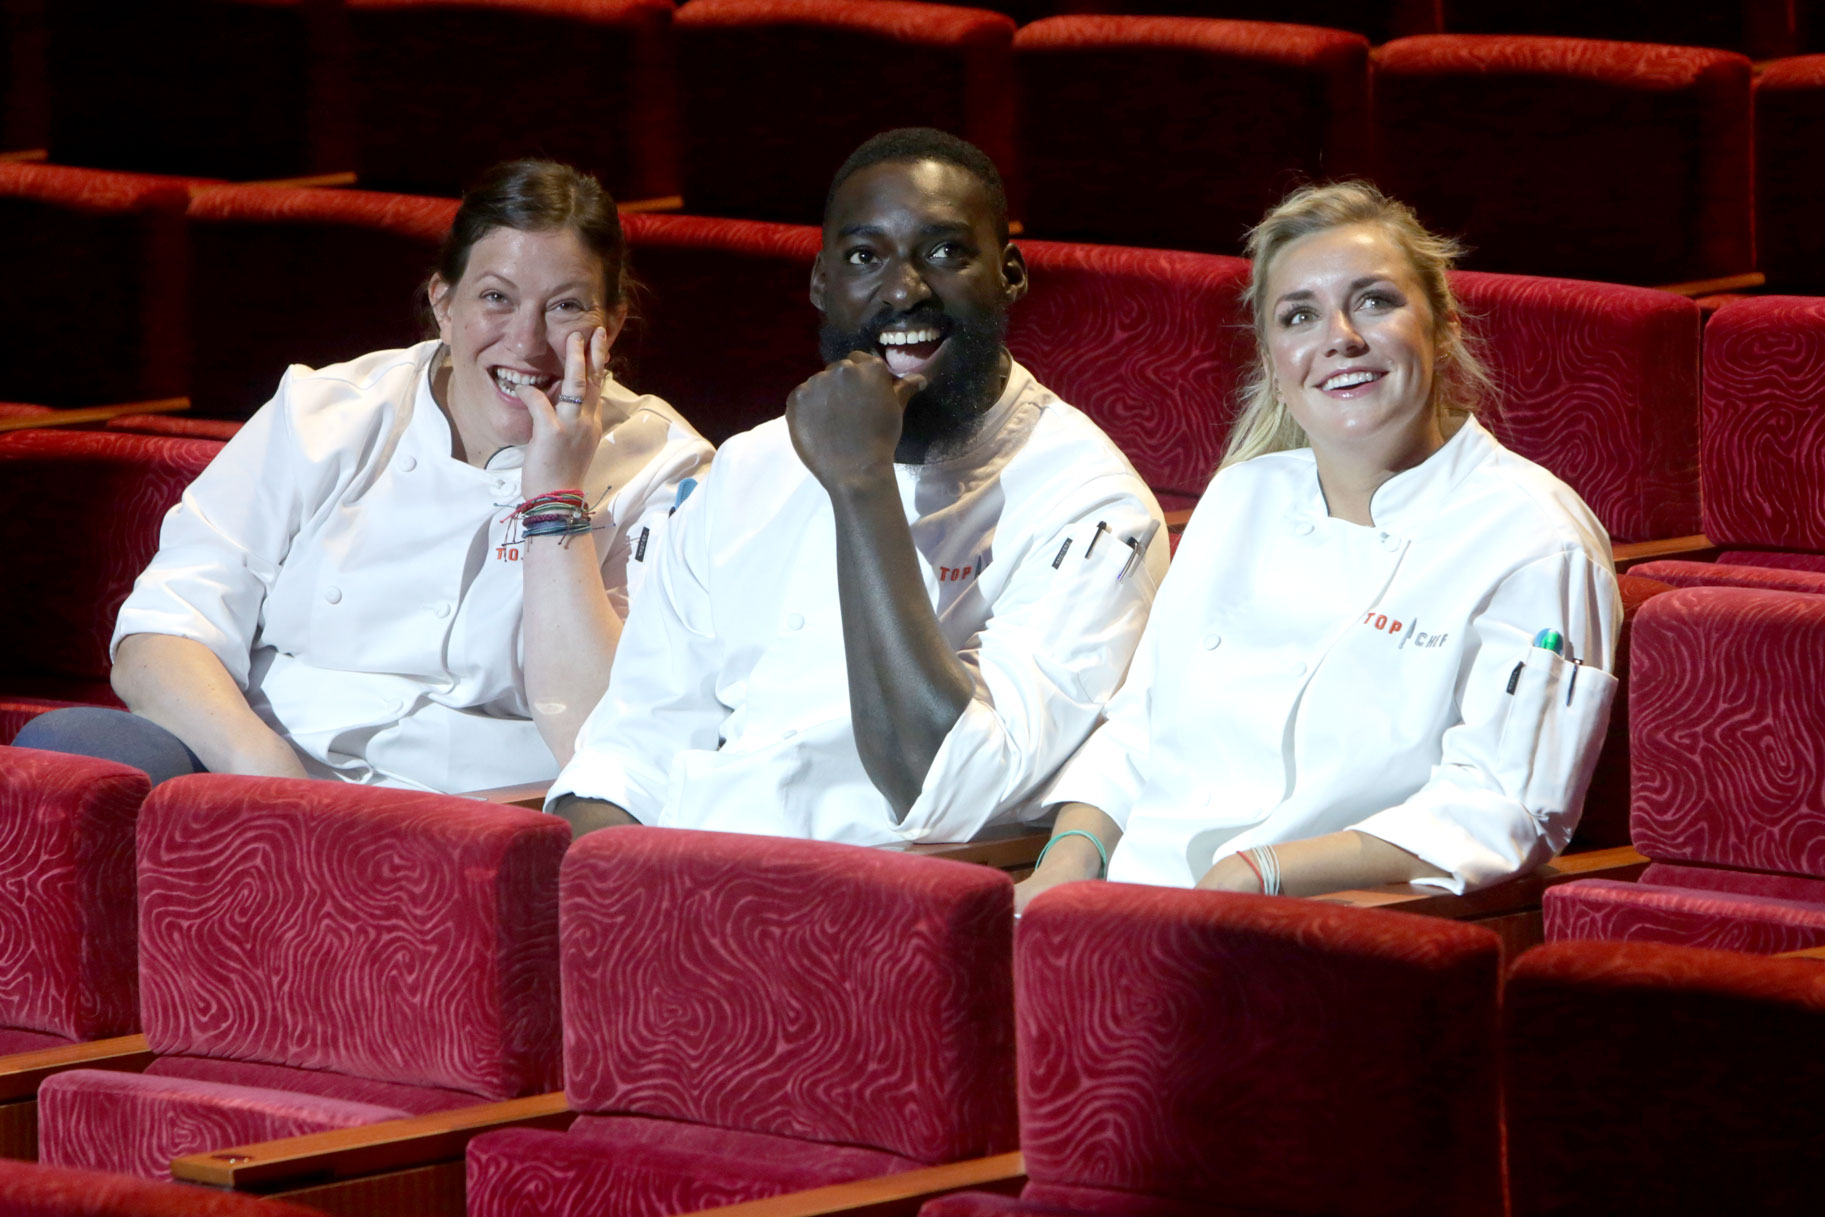 Sara Bradley, Eric Adjepong, and Kelsey Barnard Clark in Top Chef Season 16 Finale